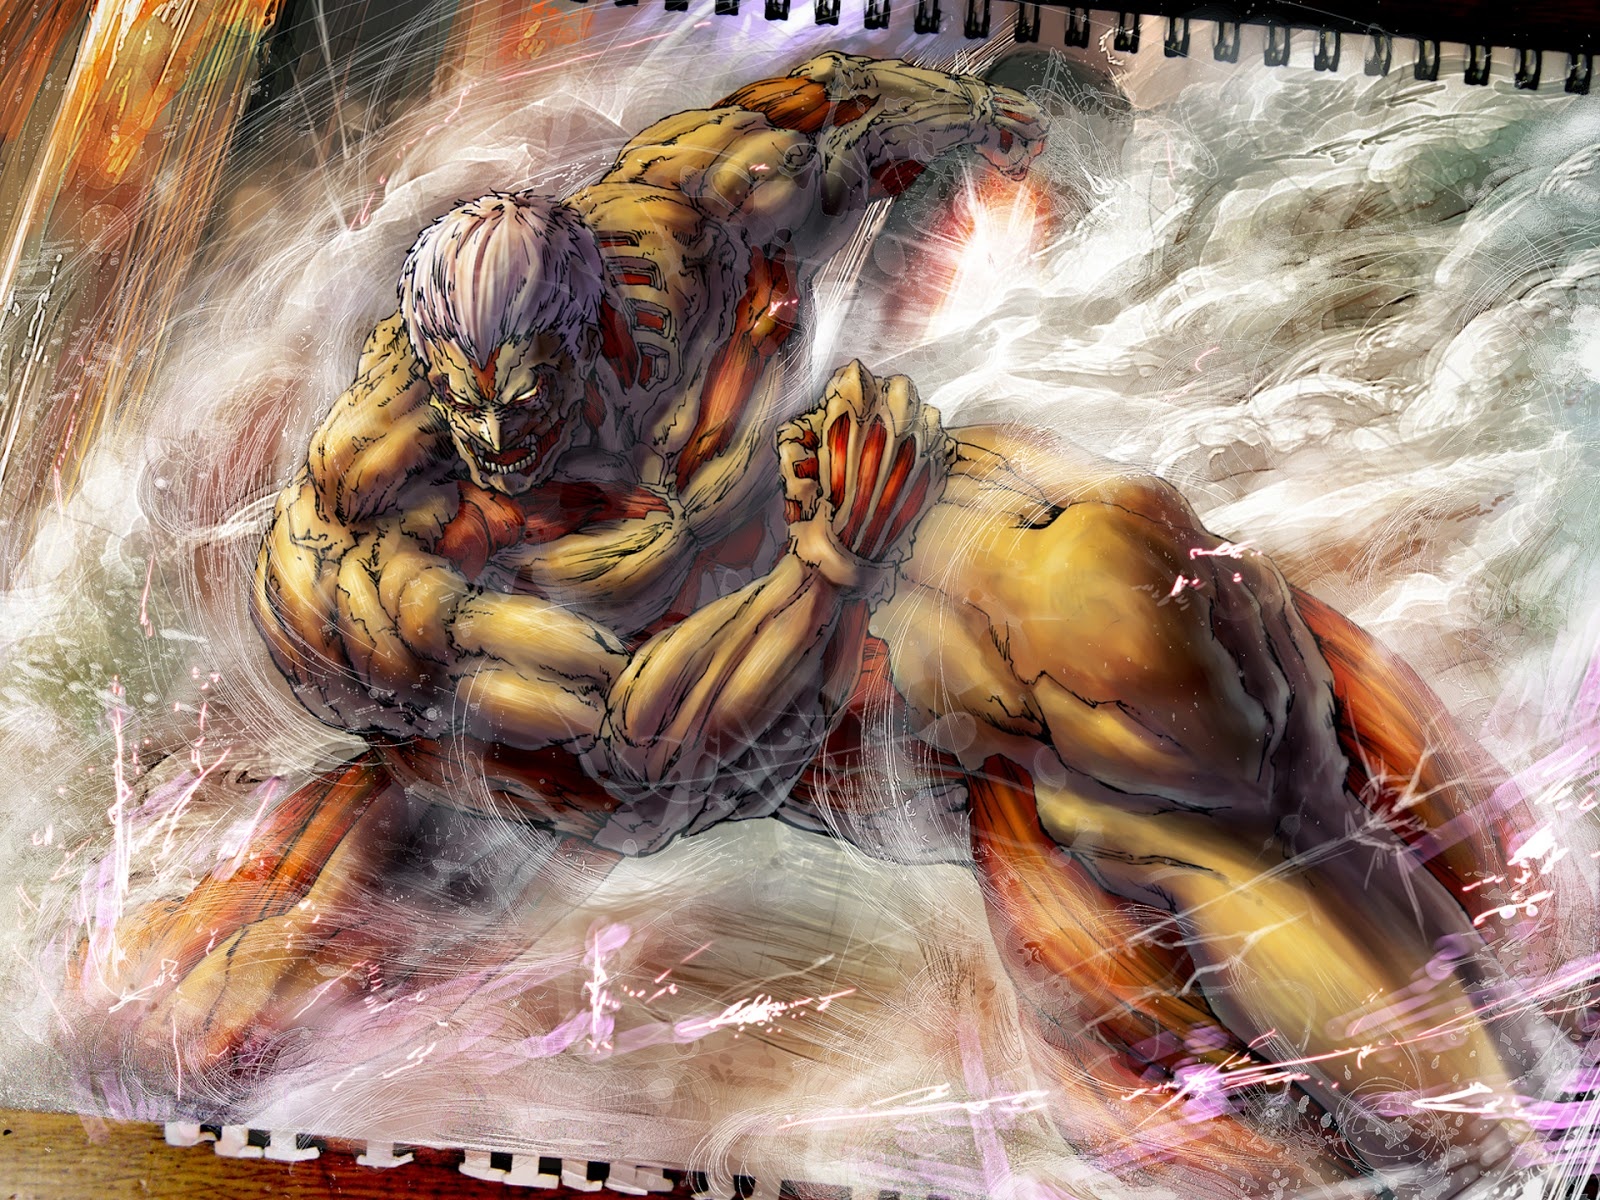 Free Download Epic Armored Titan Attack On Titan B84 Hd Wallpaper 1600x1200 For Your Desktop Mobile Tablet Explore 49 Attack On Titan Wallpapers Shingeki No Kyojin Wallpaper Attack On